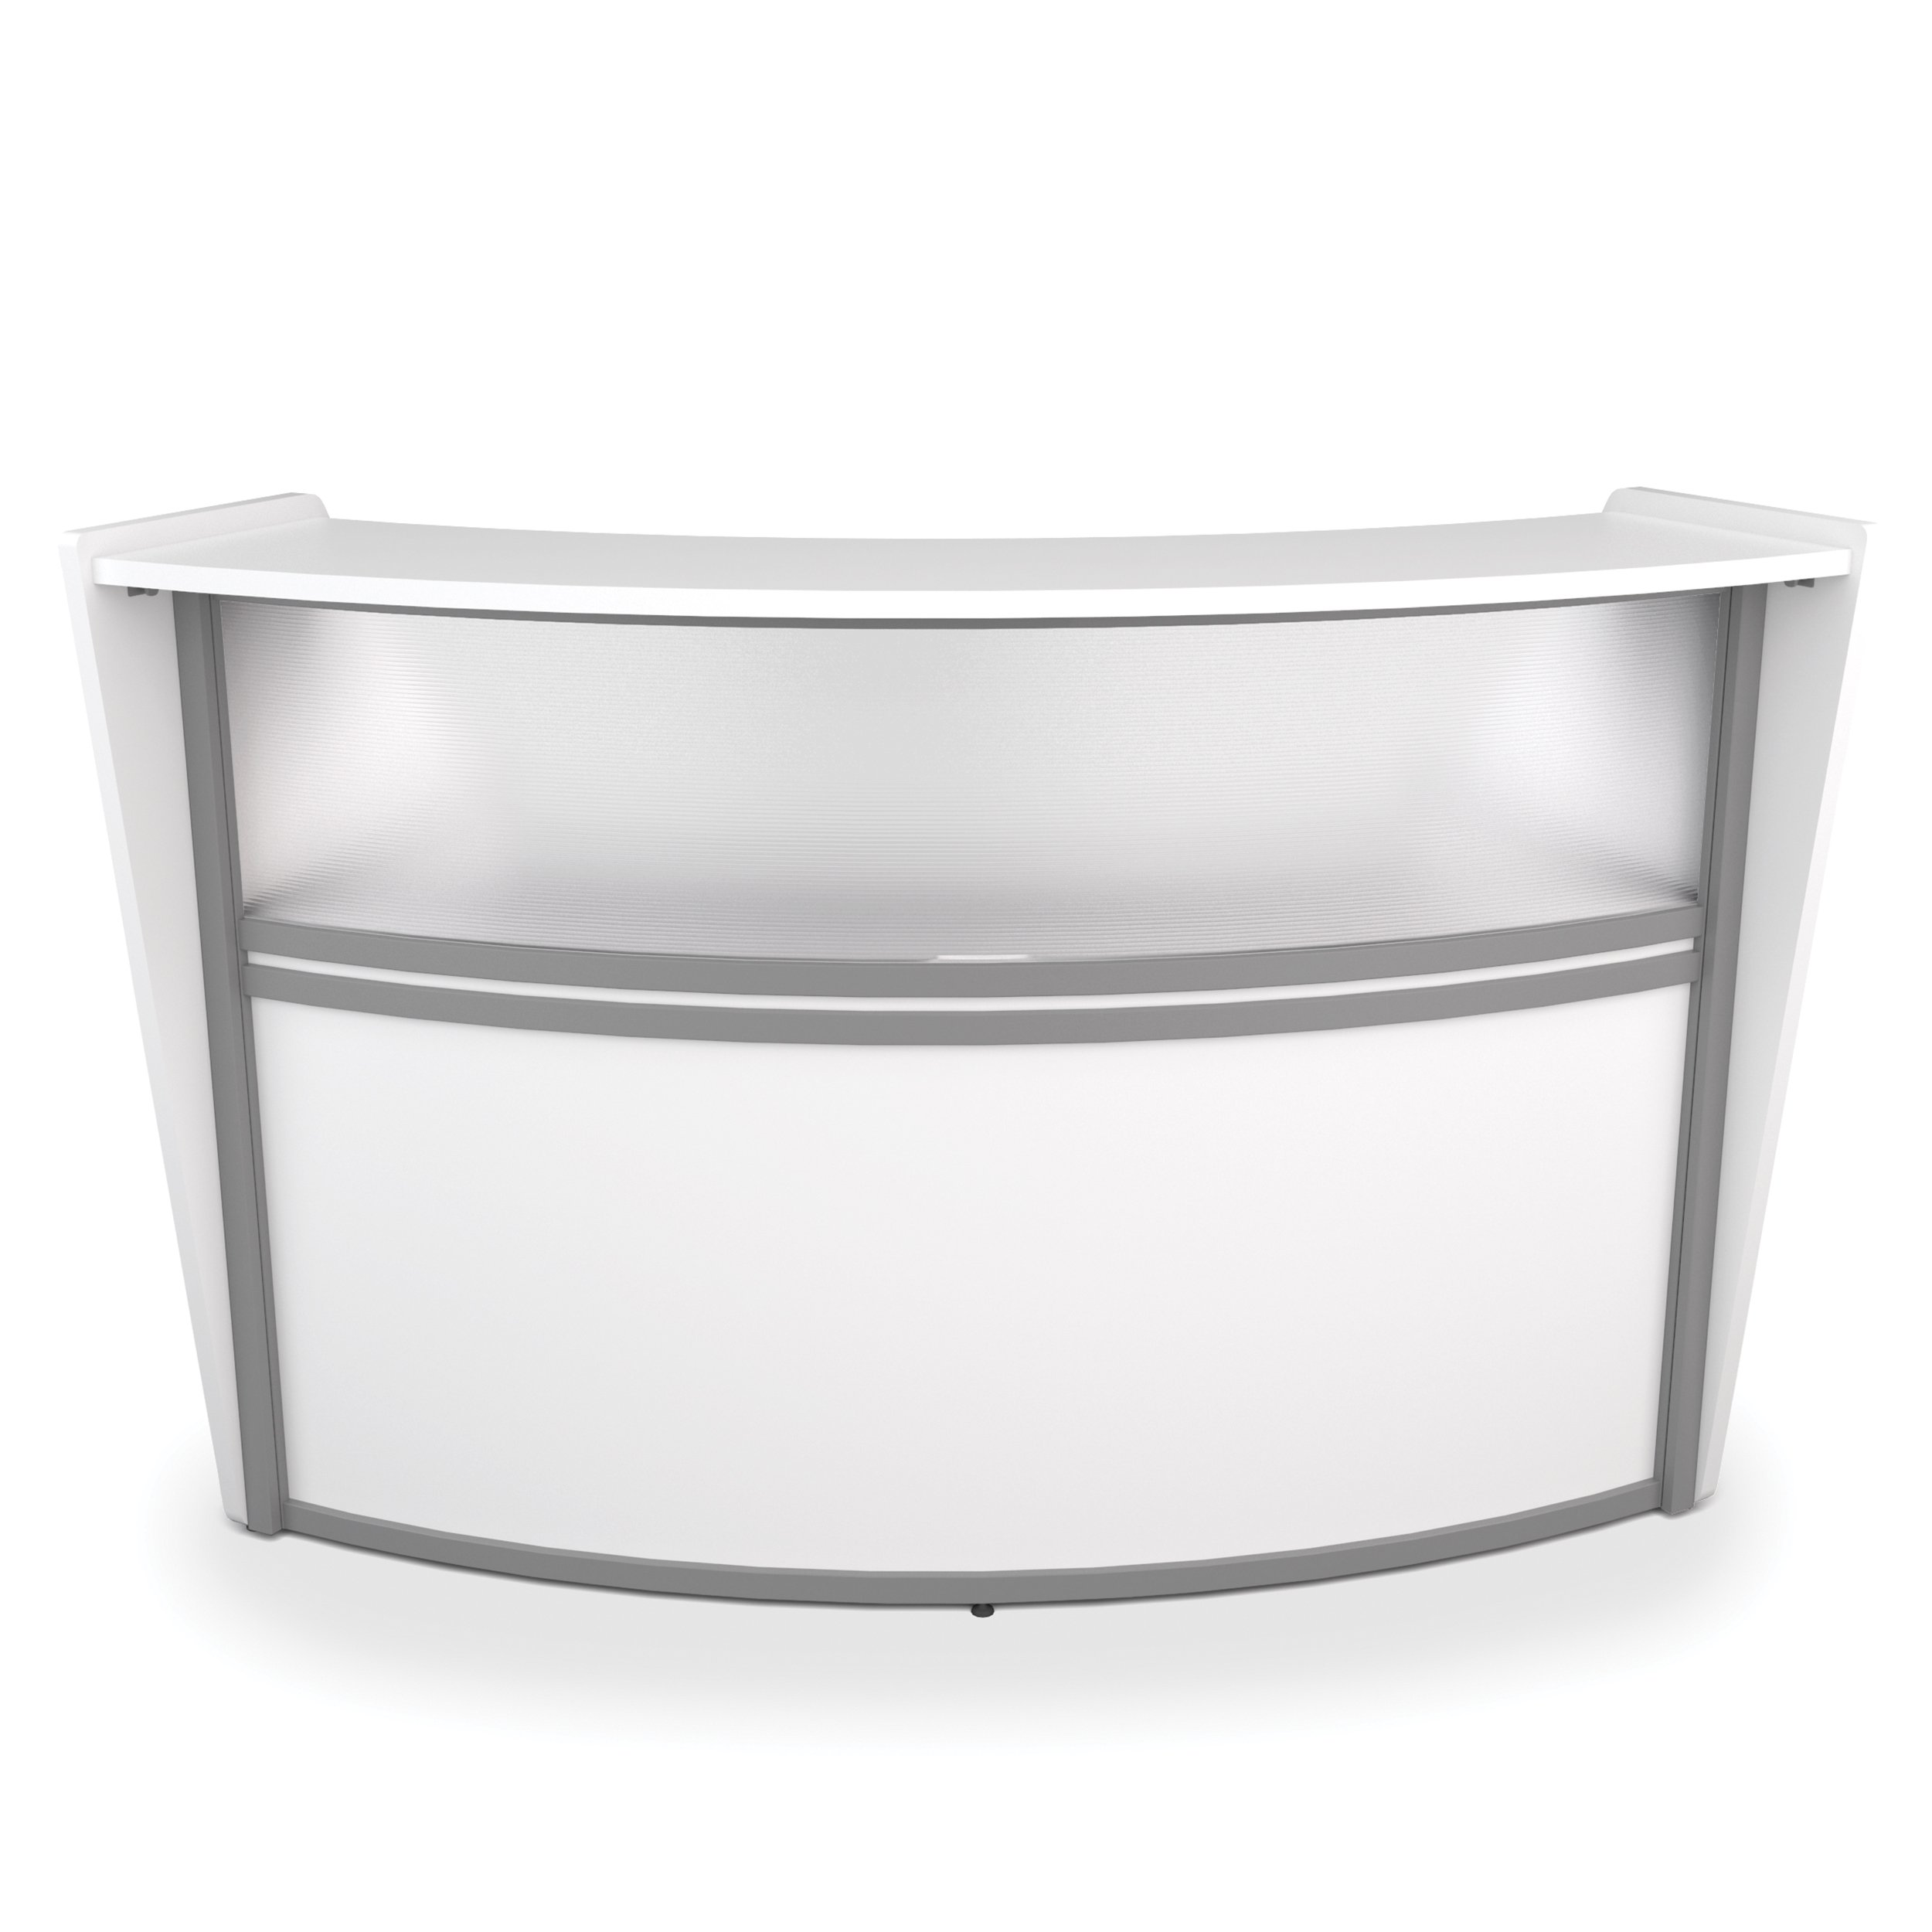 OFM Marque Series Plexi Single-Unit Curved Reception Station - Office Furniture Receptionist/Secretary Desk, White (55310-WHITE)